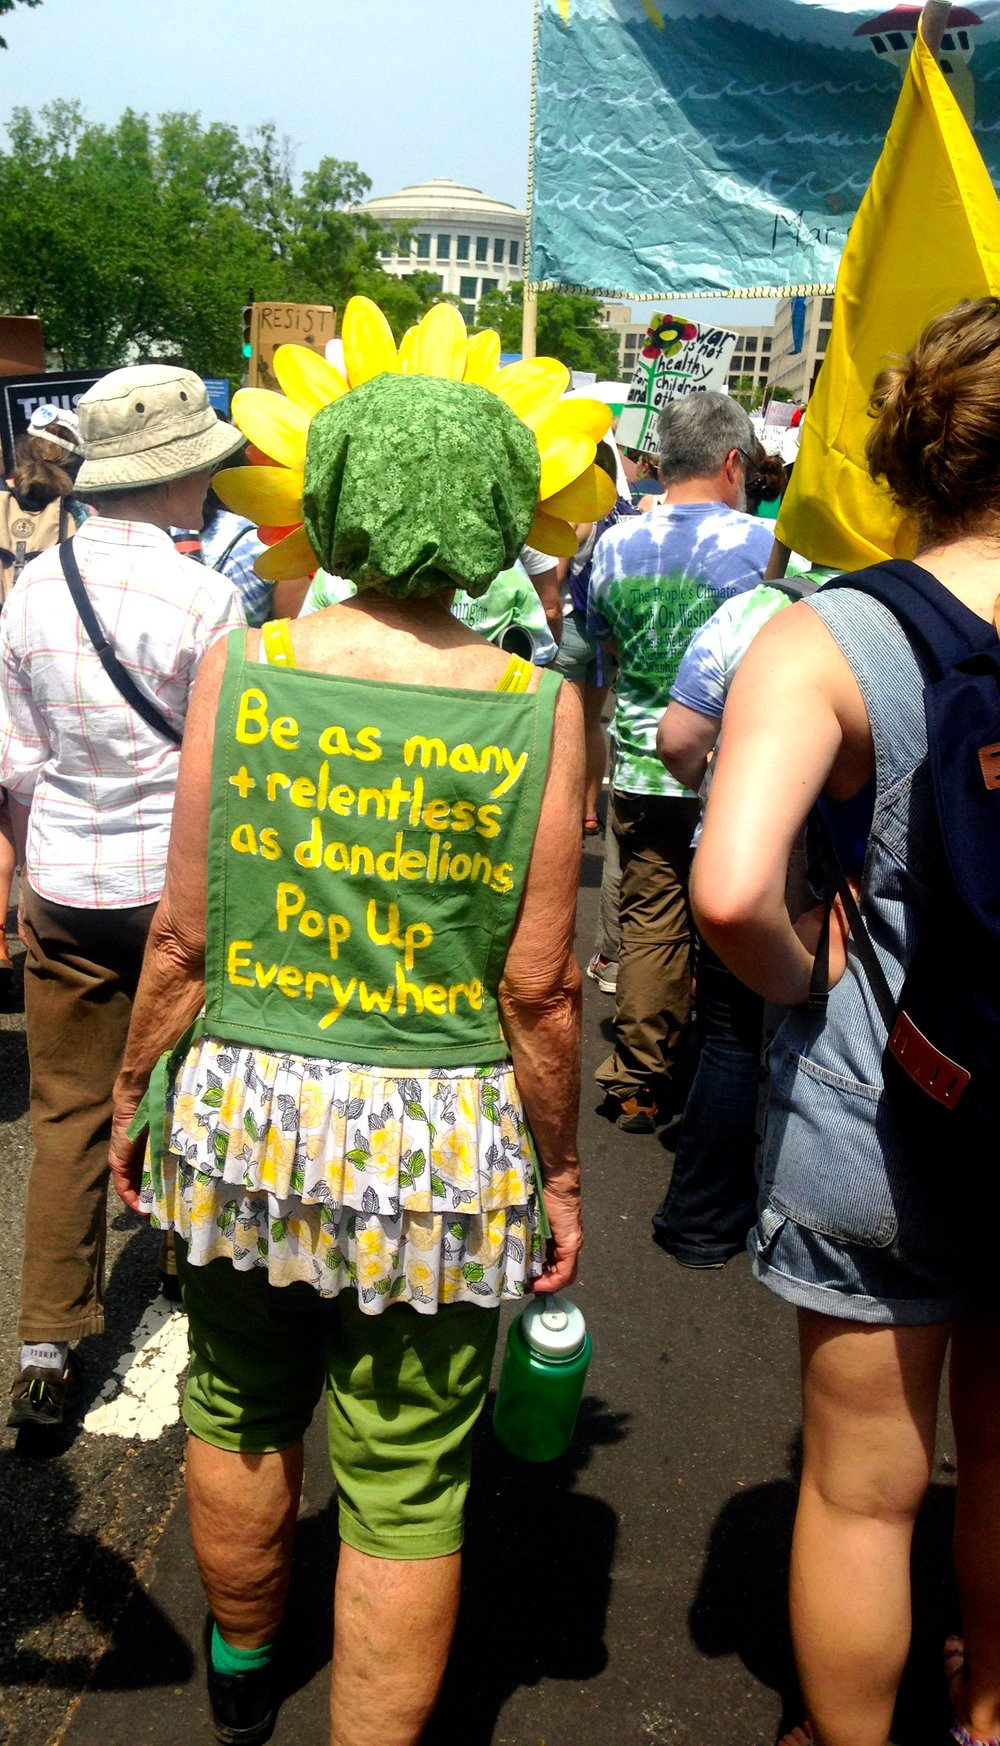 I loved this woman's handmade outfit and her message.